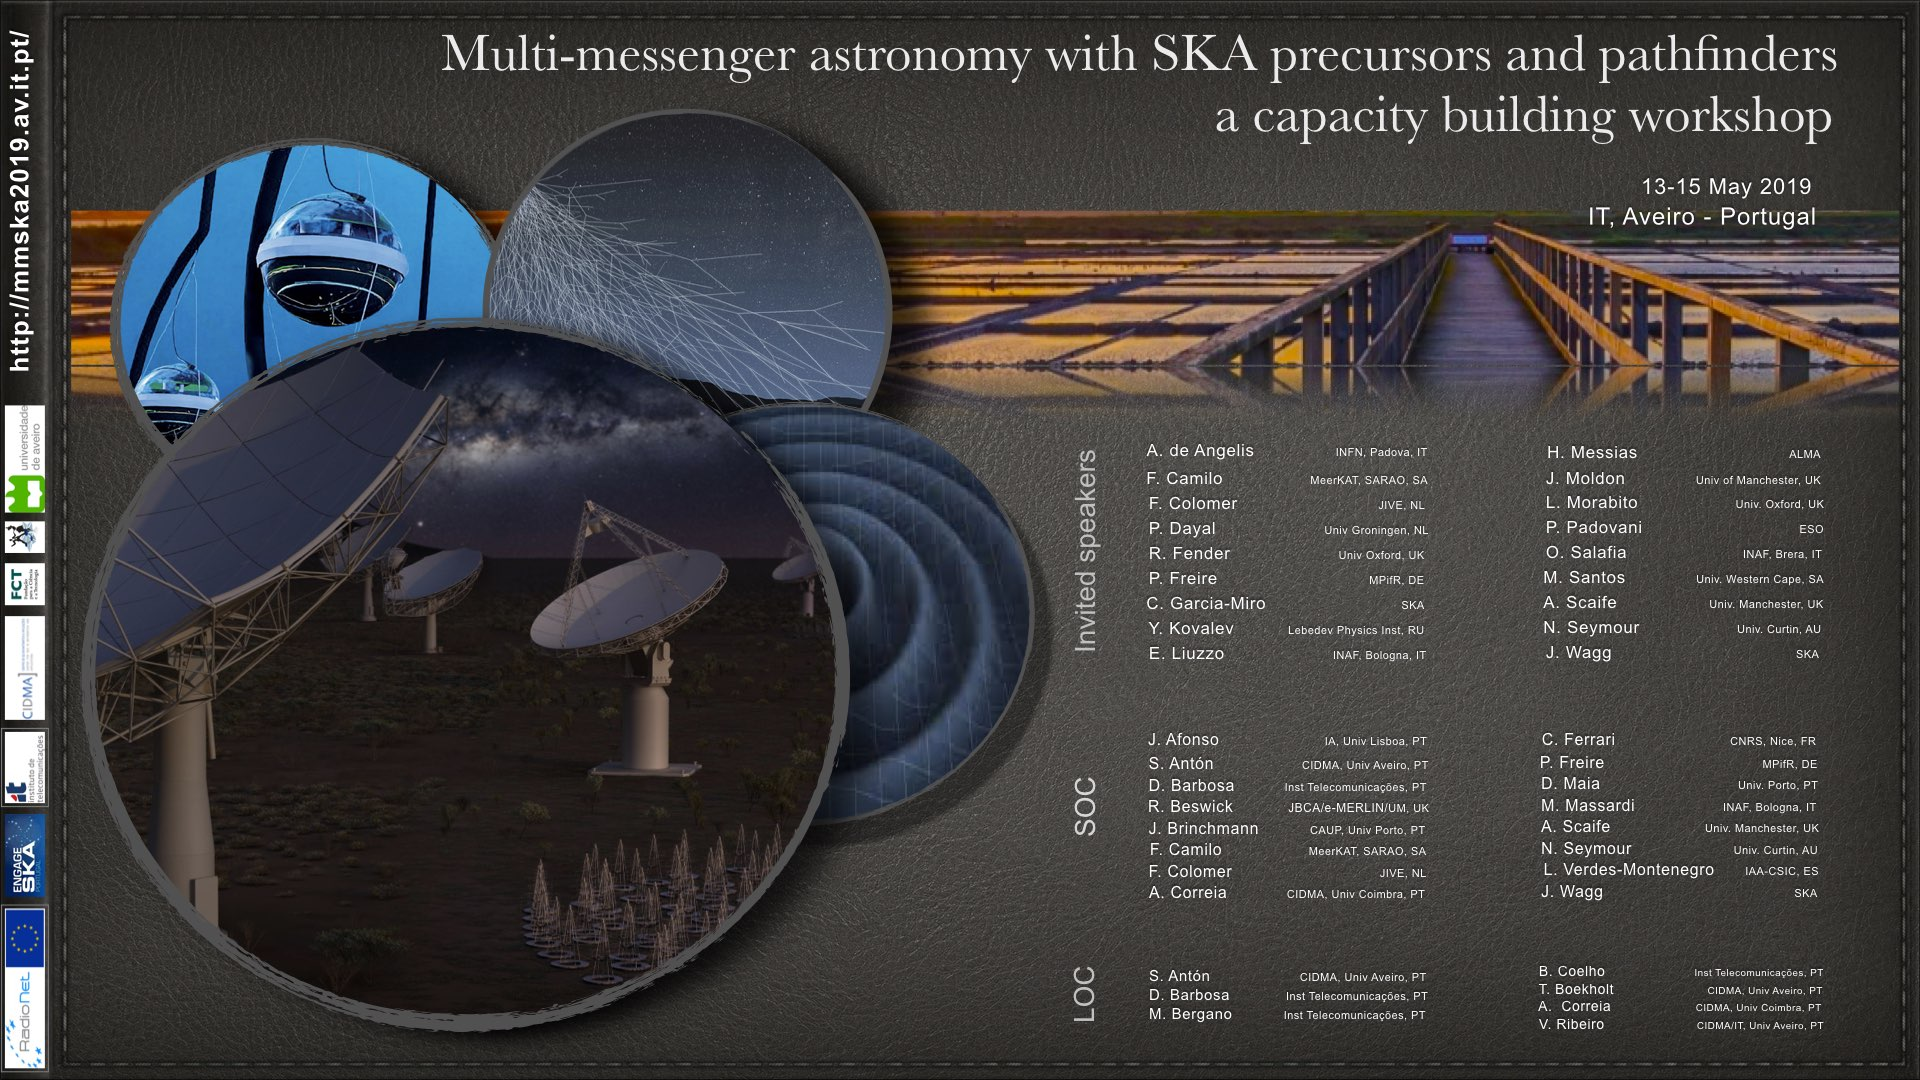 Multi-messenger astronomy with SKA precursors and pathfinders, a capacity building workshop